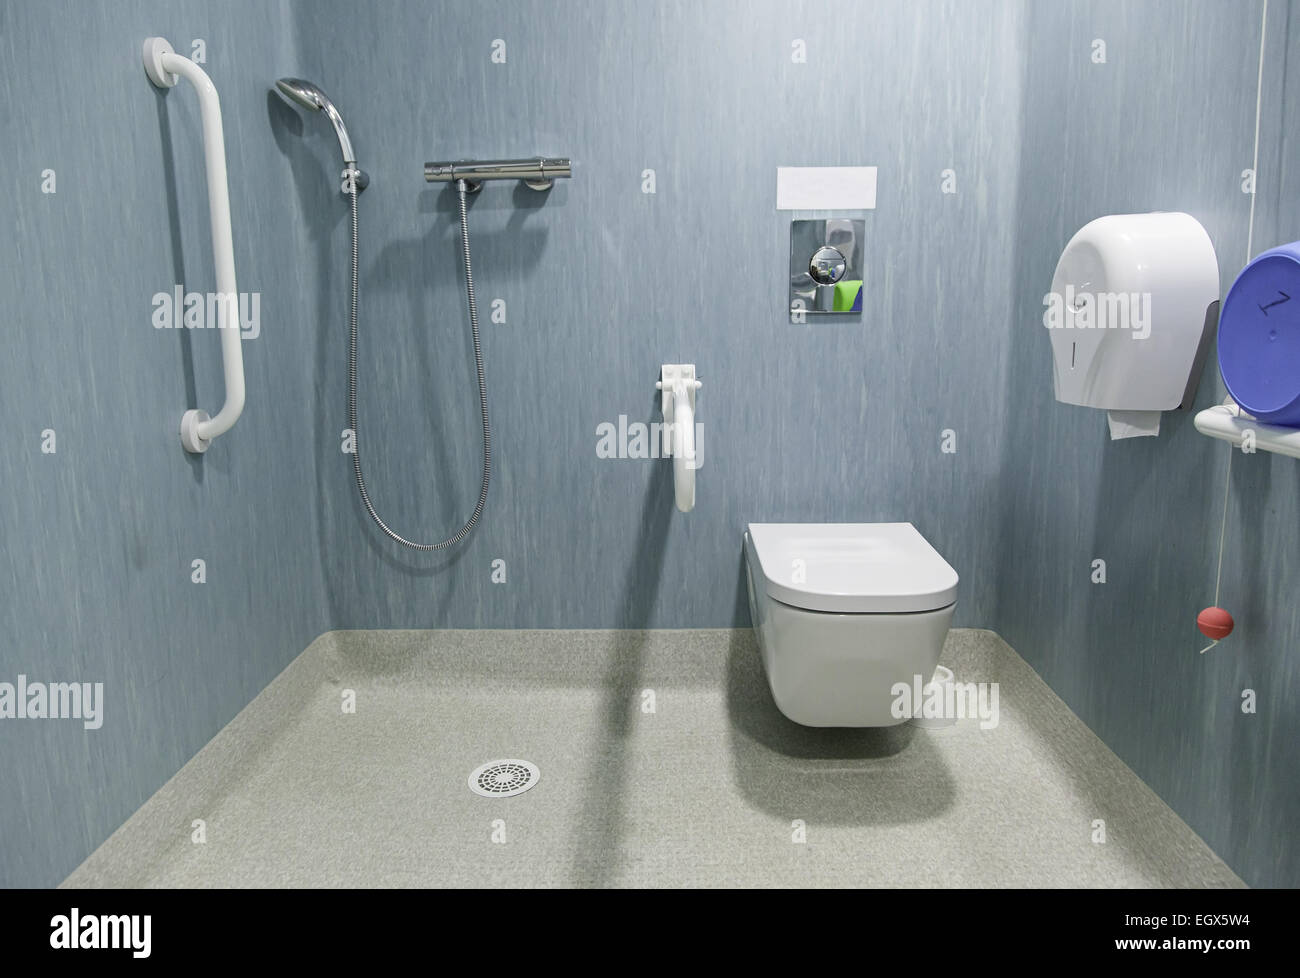 Disabled bathroom in a hospital Stock Photo: 79251344 - Alamy